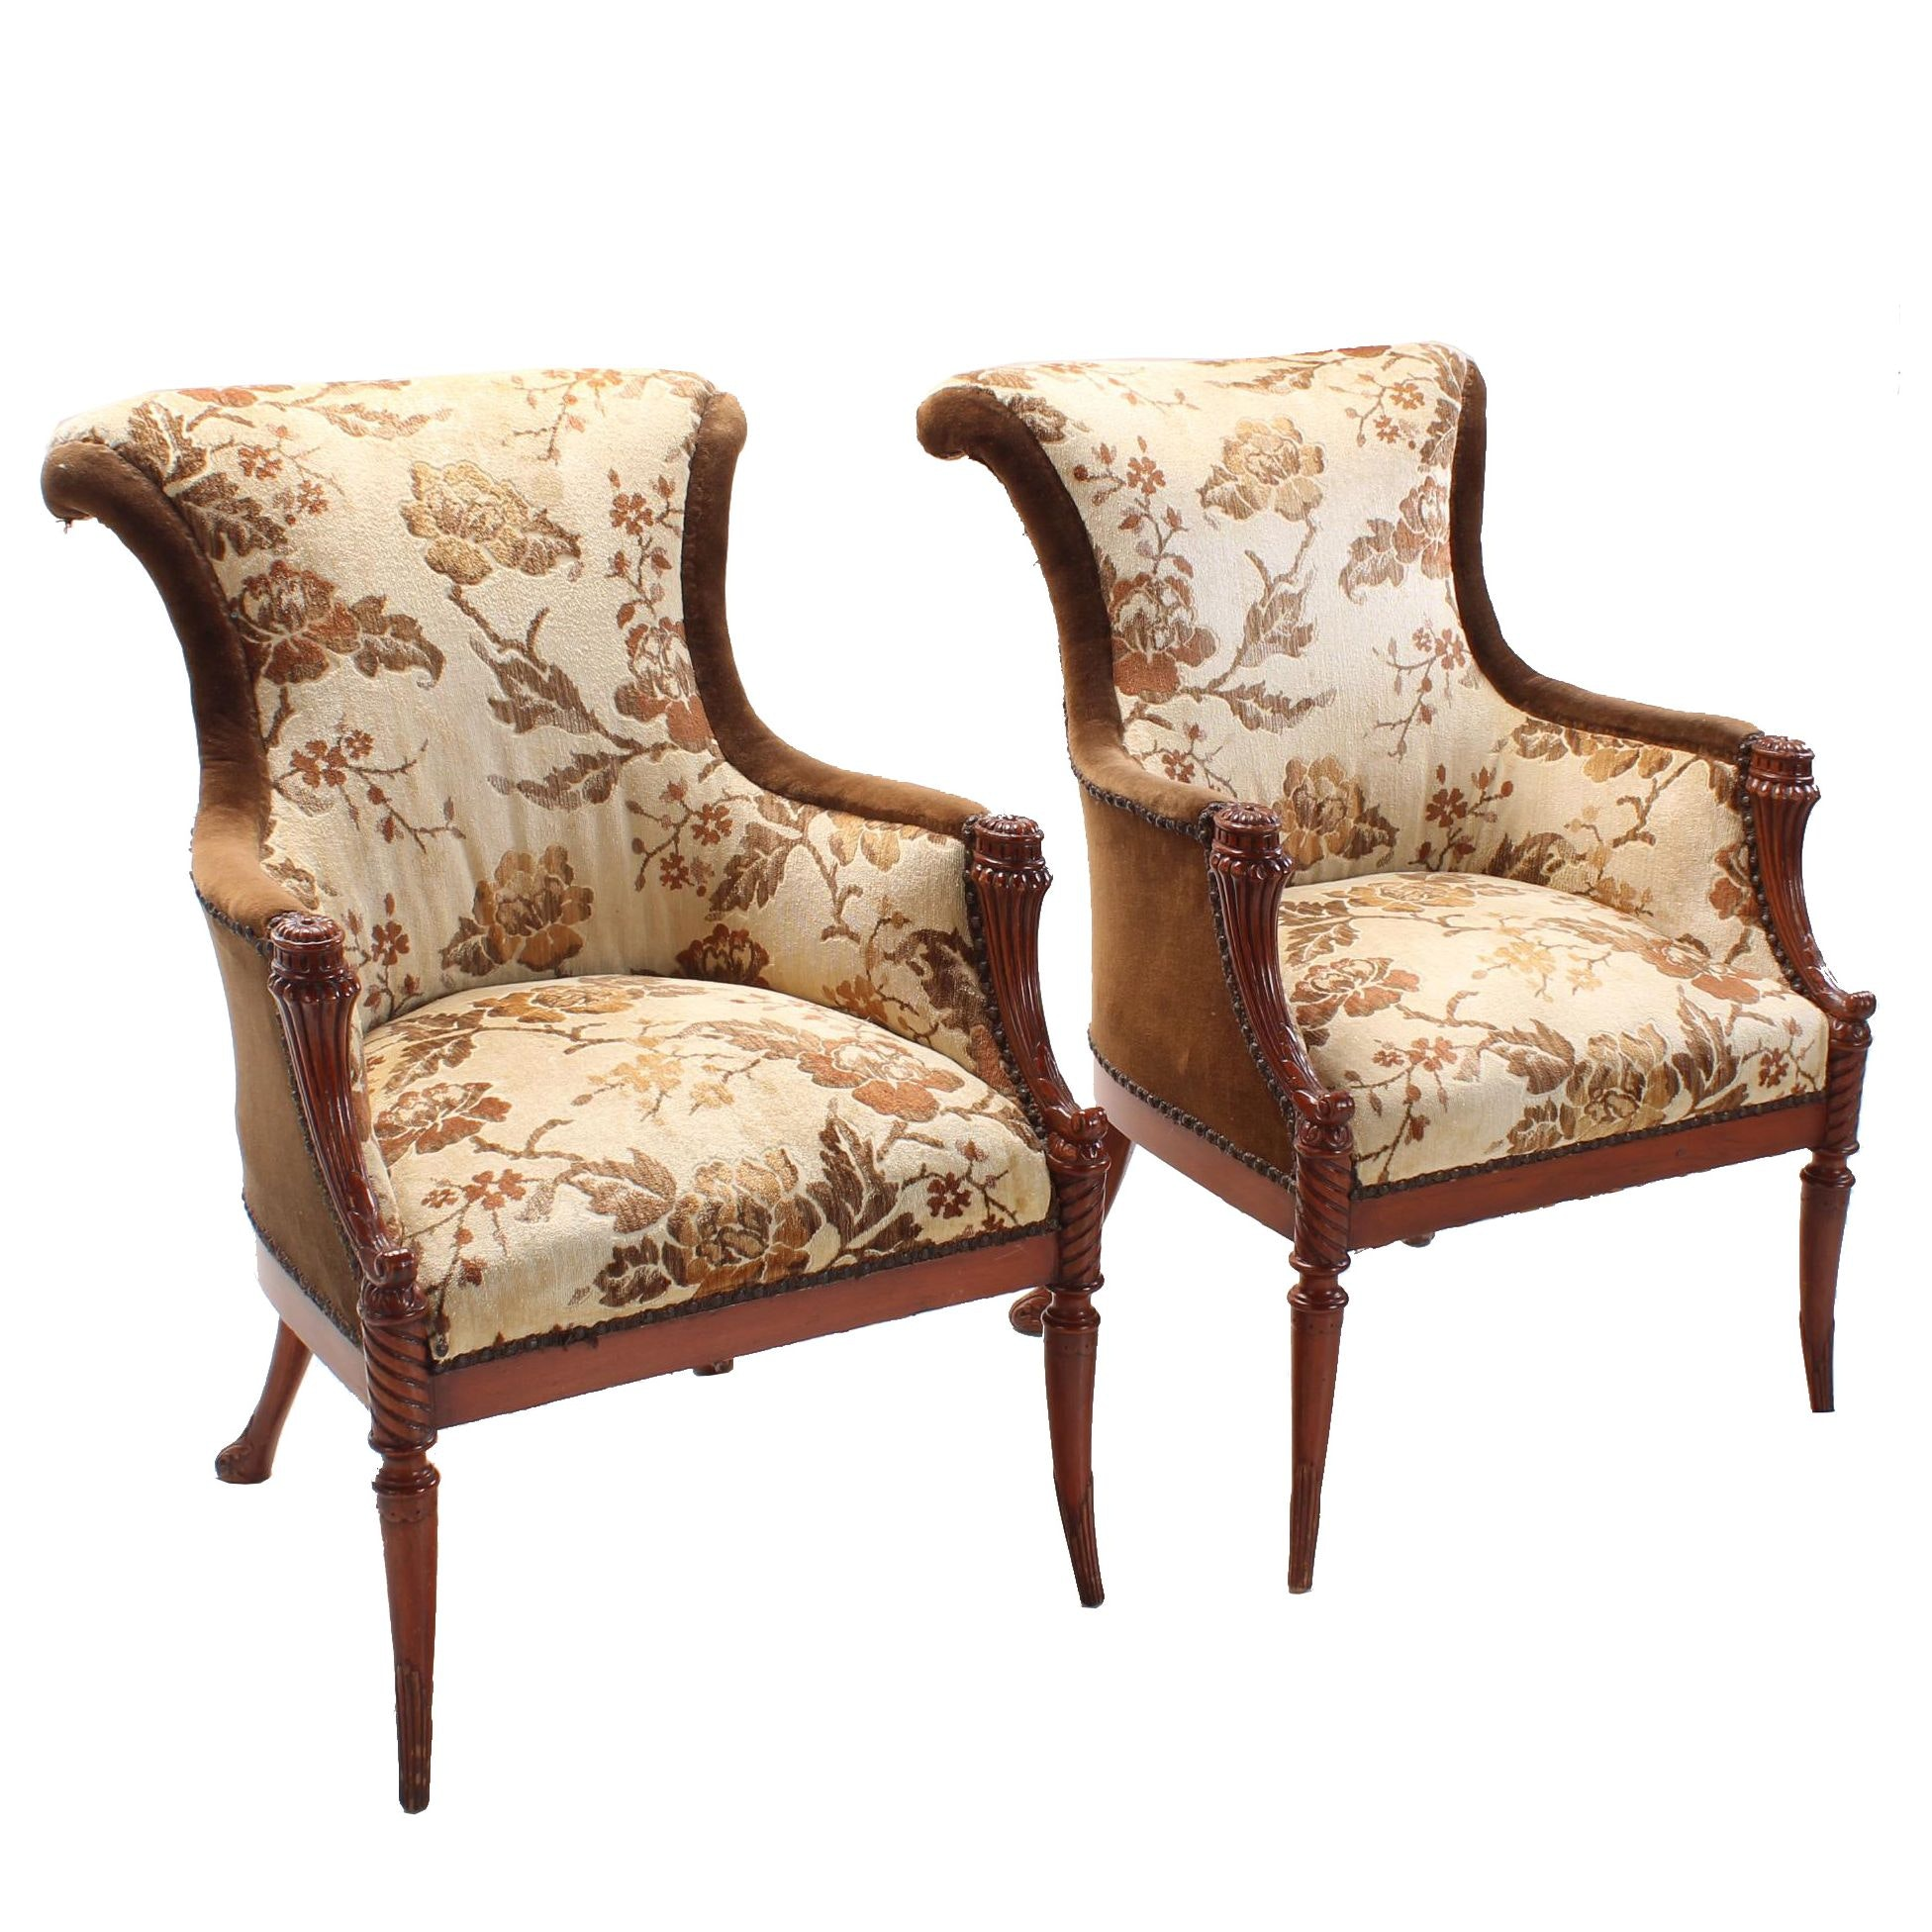 Pair of Neoclassical Style Mahogany-Stained Bergères, 20th Century